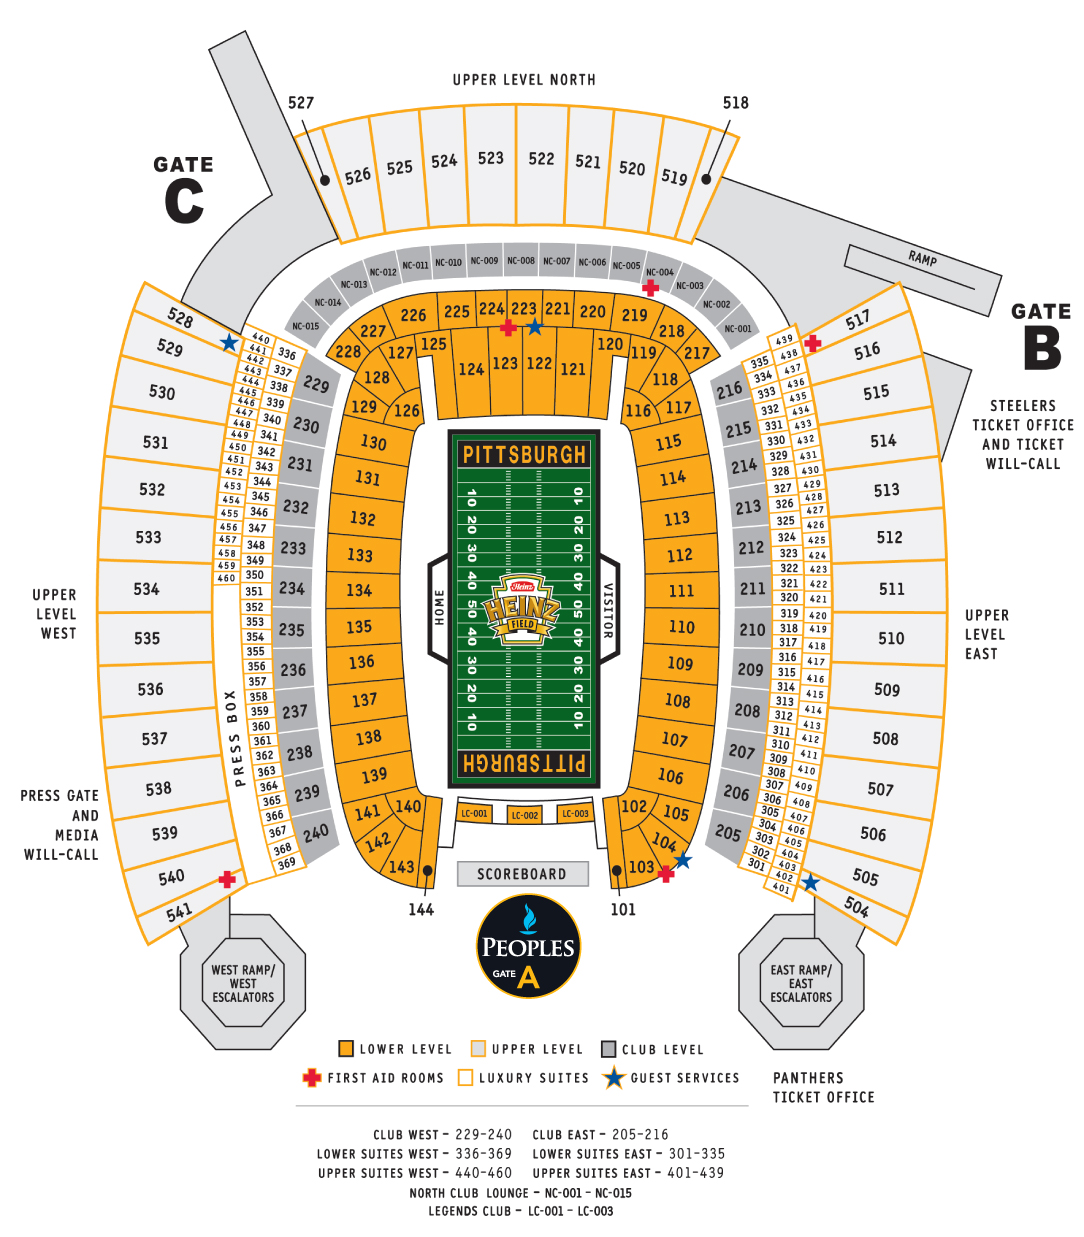 Heinz Field Seat Map Game Day Seating Chart ⋆ Heinz Field in Pittsburgh, PA Heinz Field Seat Map